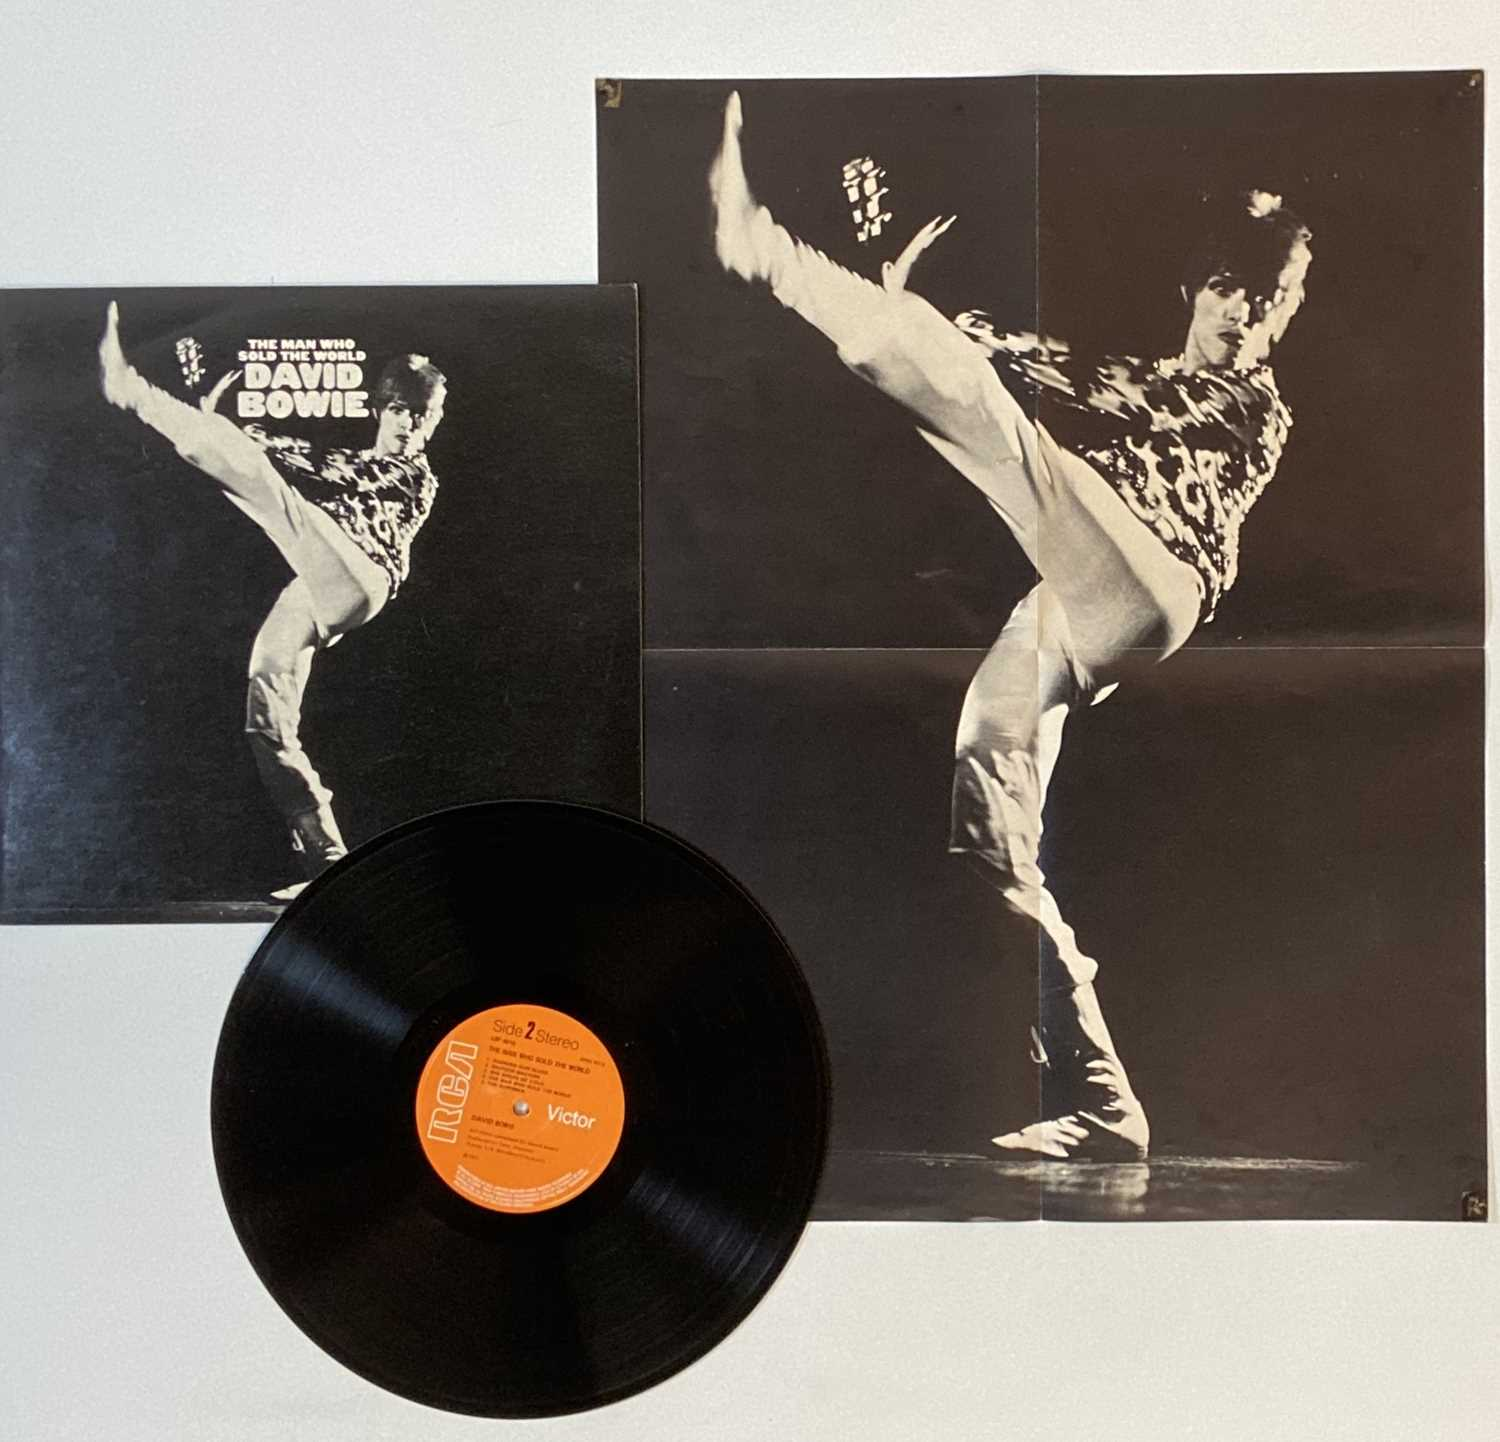 DAVID BOWIE - UK PRESSING LP COLLECTION - Image 5 of 7